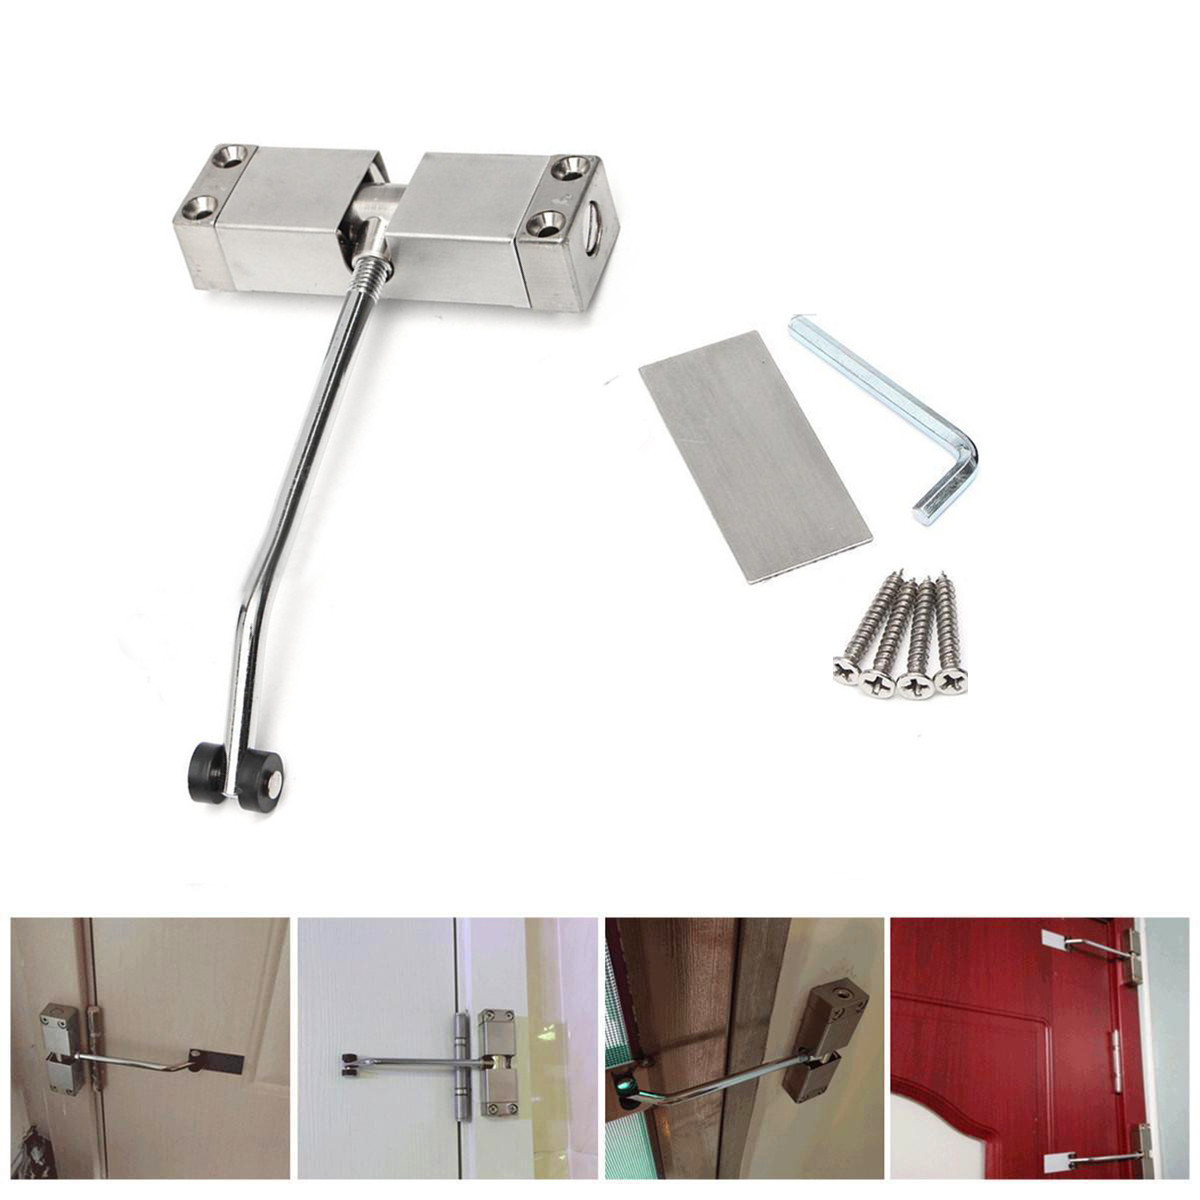 цена на Durable Adjustable Automatic Door Closer Stainless Steel Surface Mounted Household Spring Auto Door Closer Hardware Tool